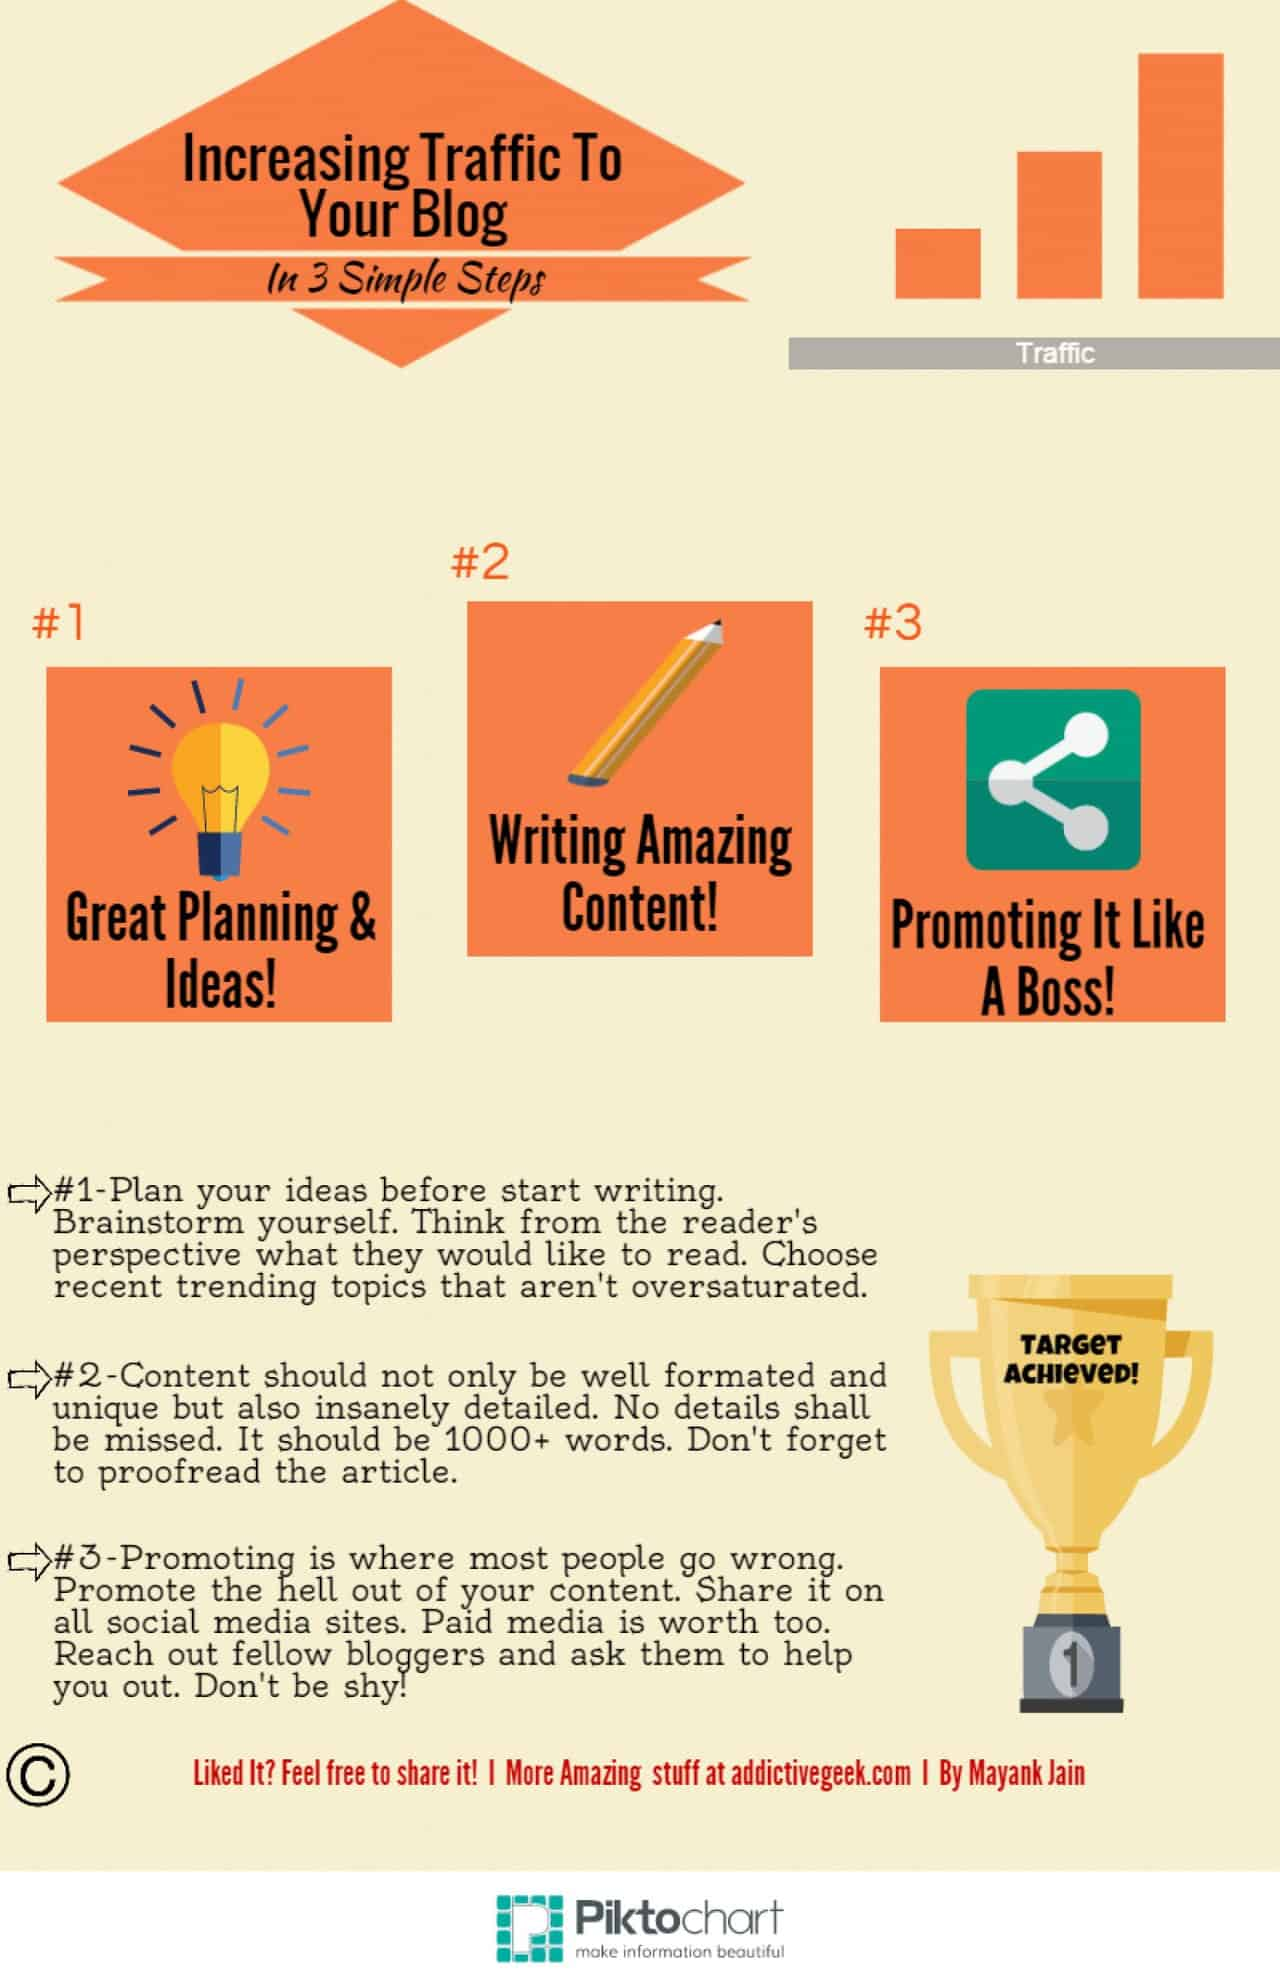 Learn more about how to increase traffic to your blog, in this great infographic!